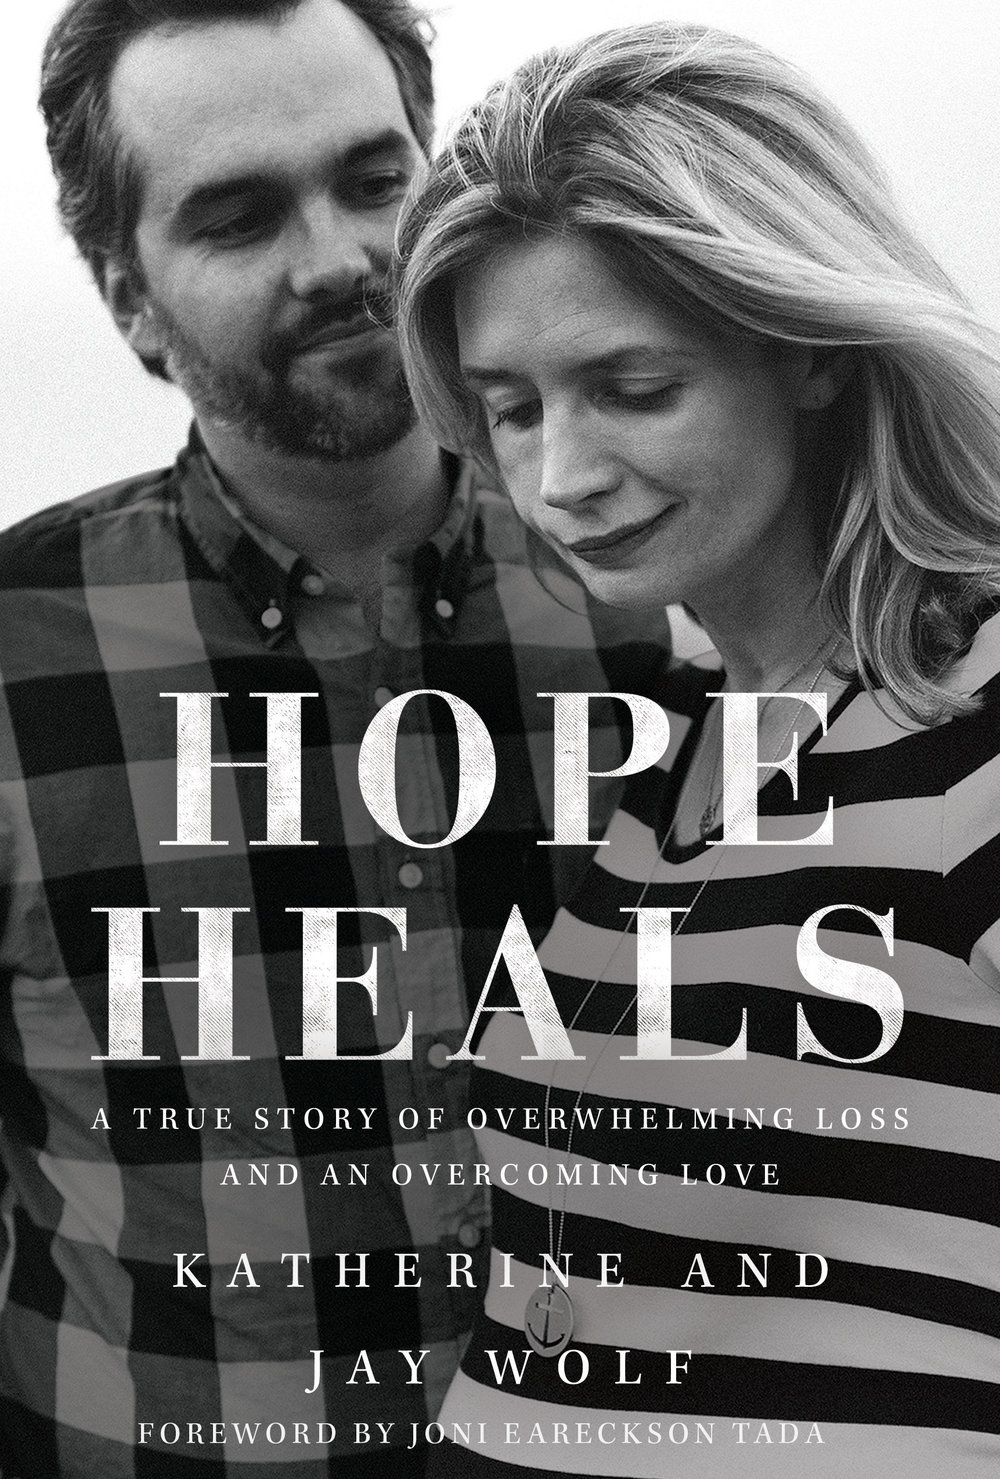 """45-minutes portrait session By Emily Blake (photographer of """"Hope Heals"""" book cover)"""